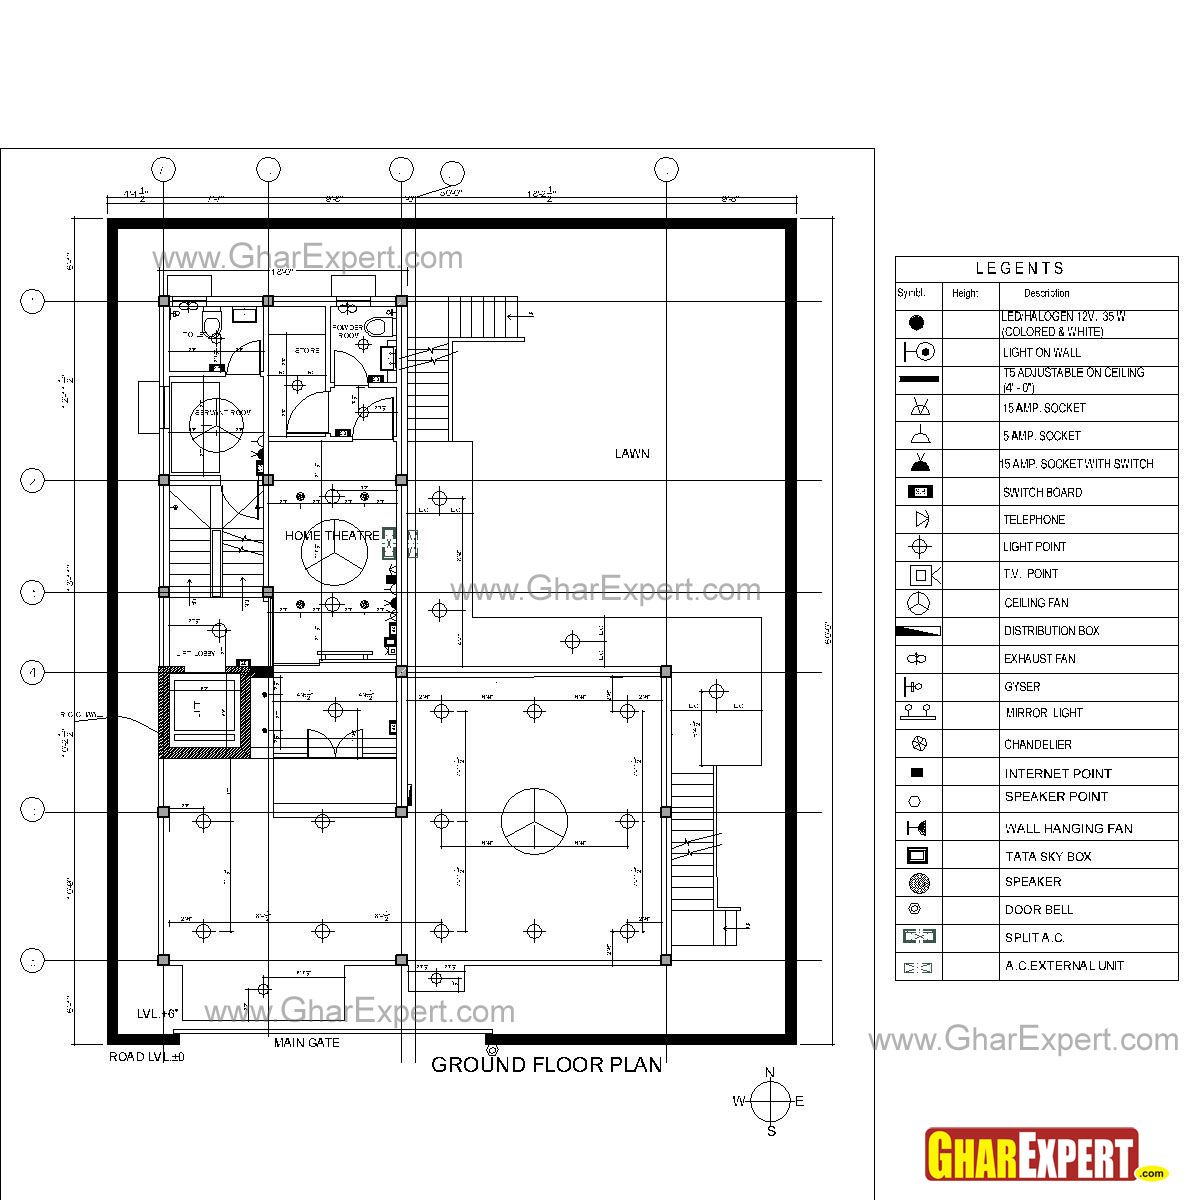 small resolution of sample architectural structure plumbing and electrical drawings